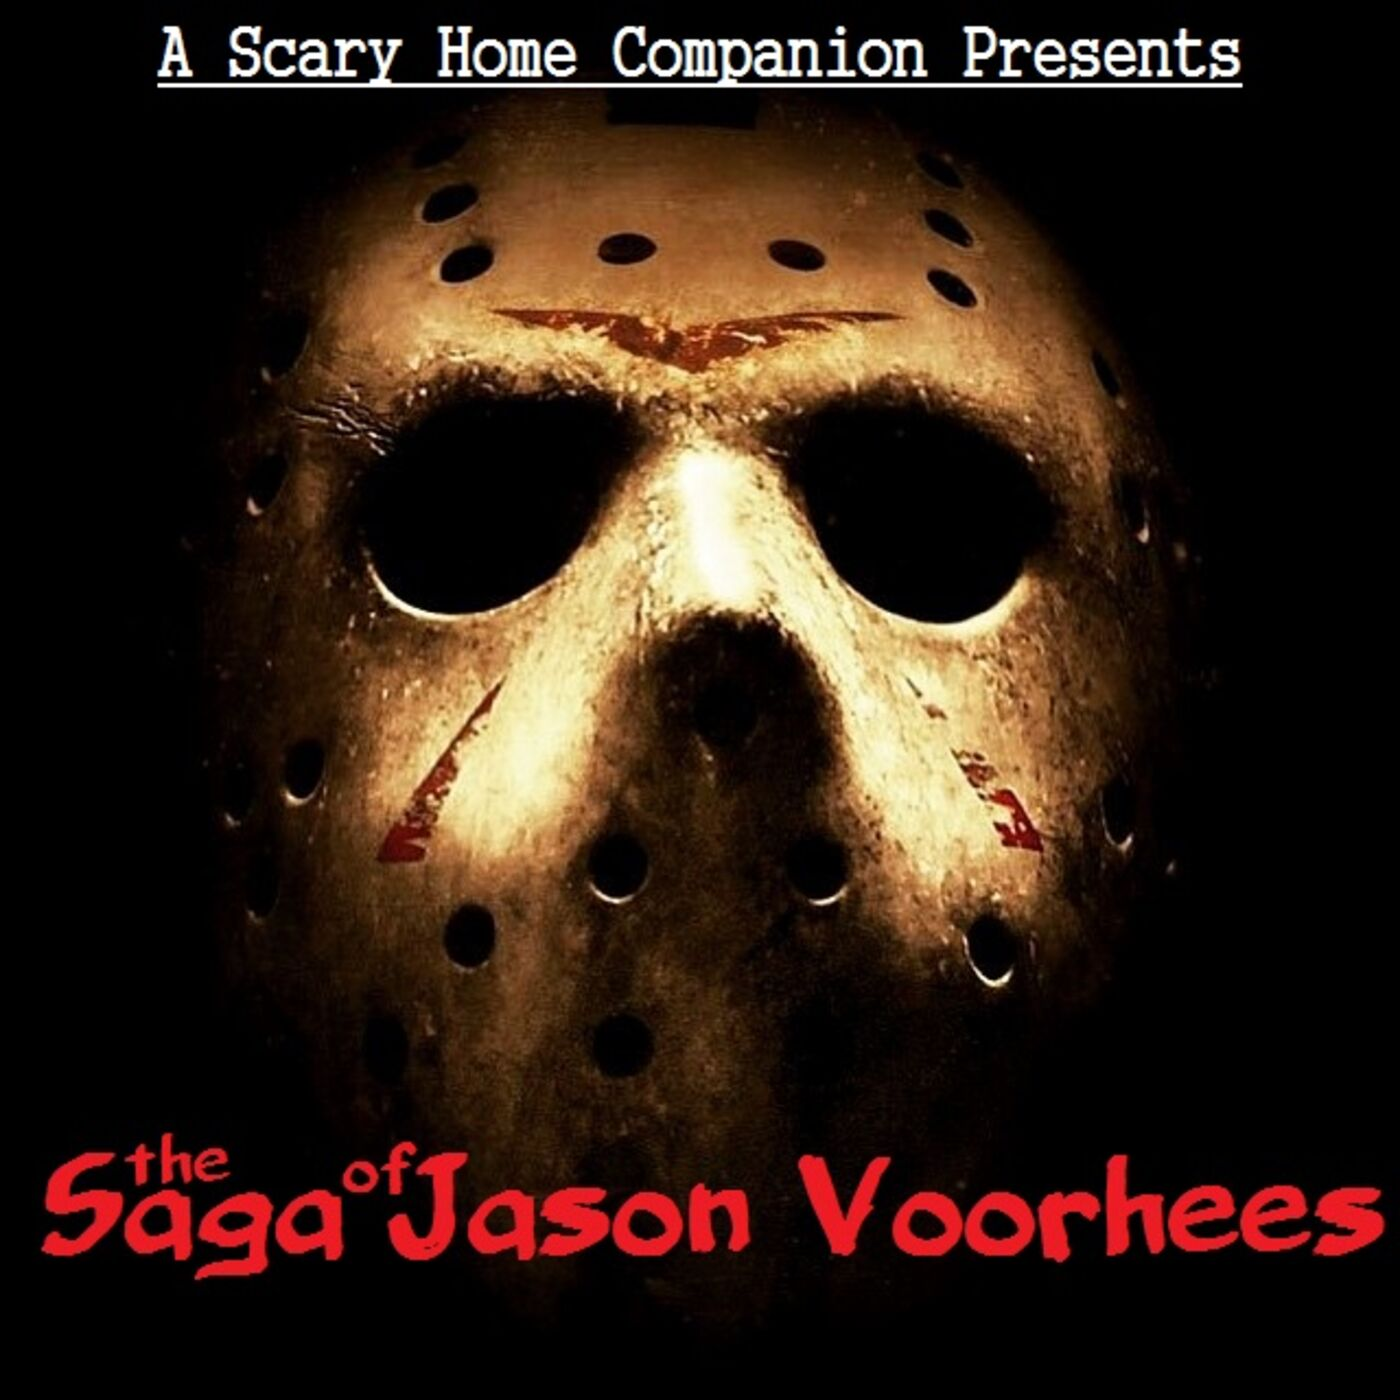 Friday the 13th The Saga of Jason Voorhees